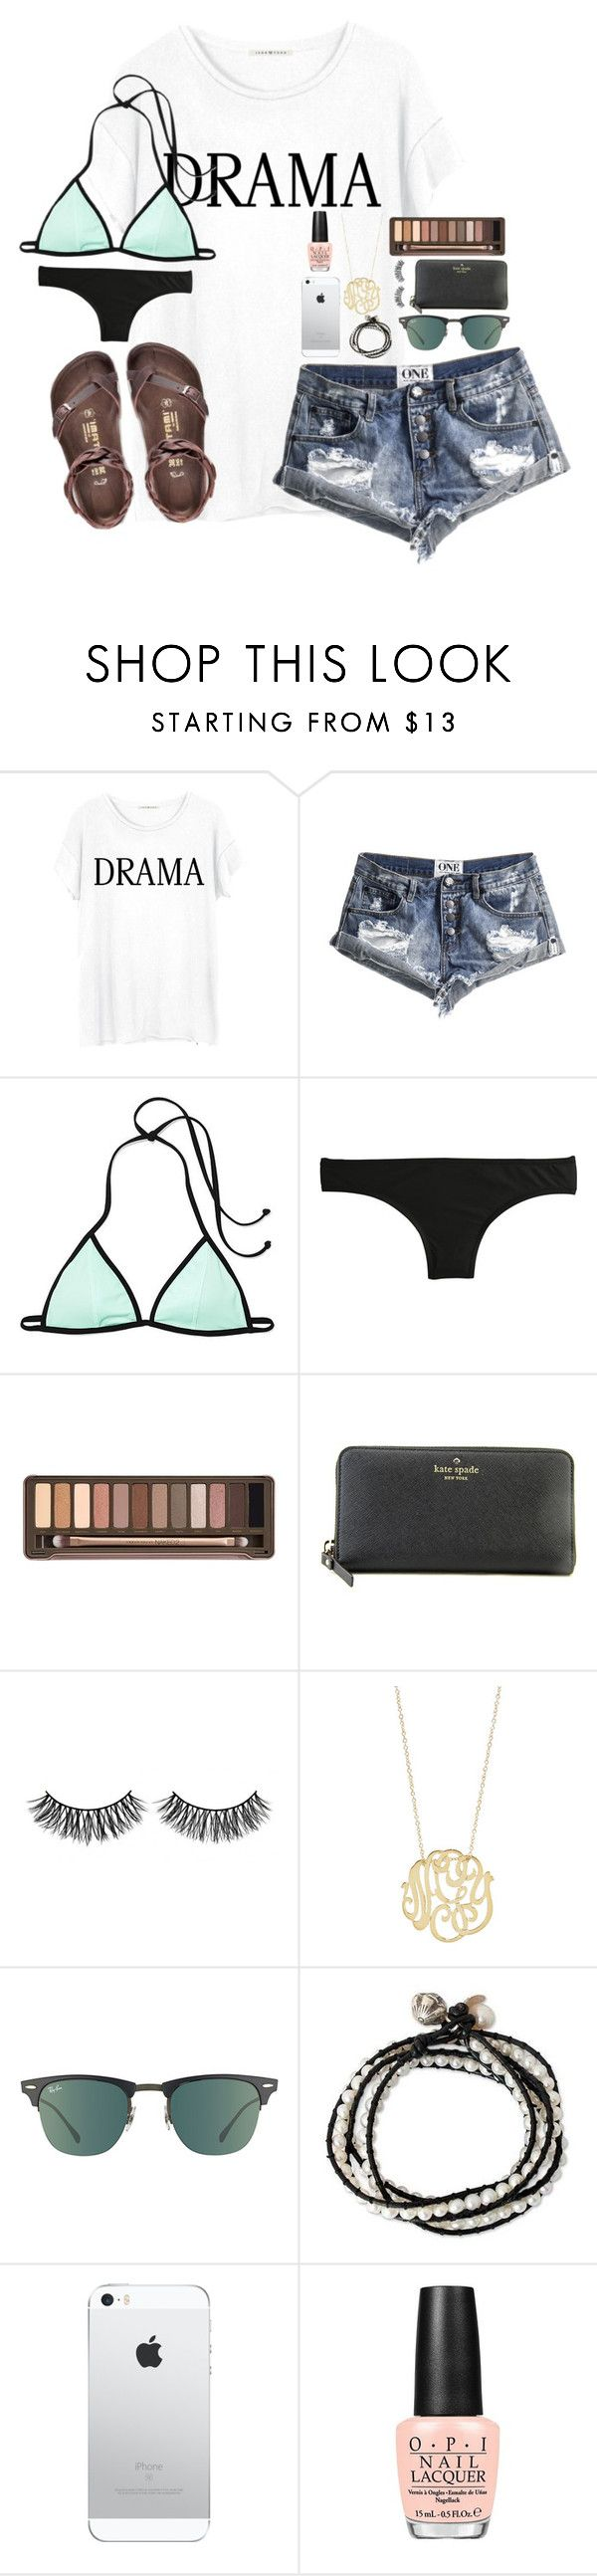 """""""TYSM FOR 1.9K OMG YALL R THE BEST"""" by lydia-hh ❤ liked on Polyvore featuring Junk Food Clothing, One Teaspoon, Birkenstock, J.Crew, Urban Decay, Kate Spade, Rimini, Ginette NY, Ray-Ban and NOVICA"""